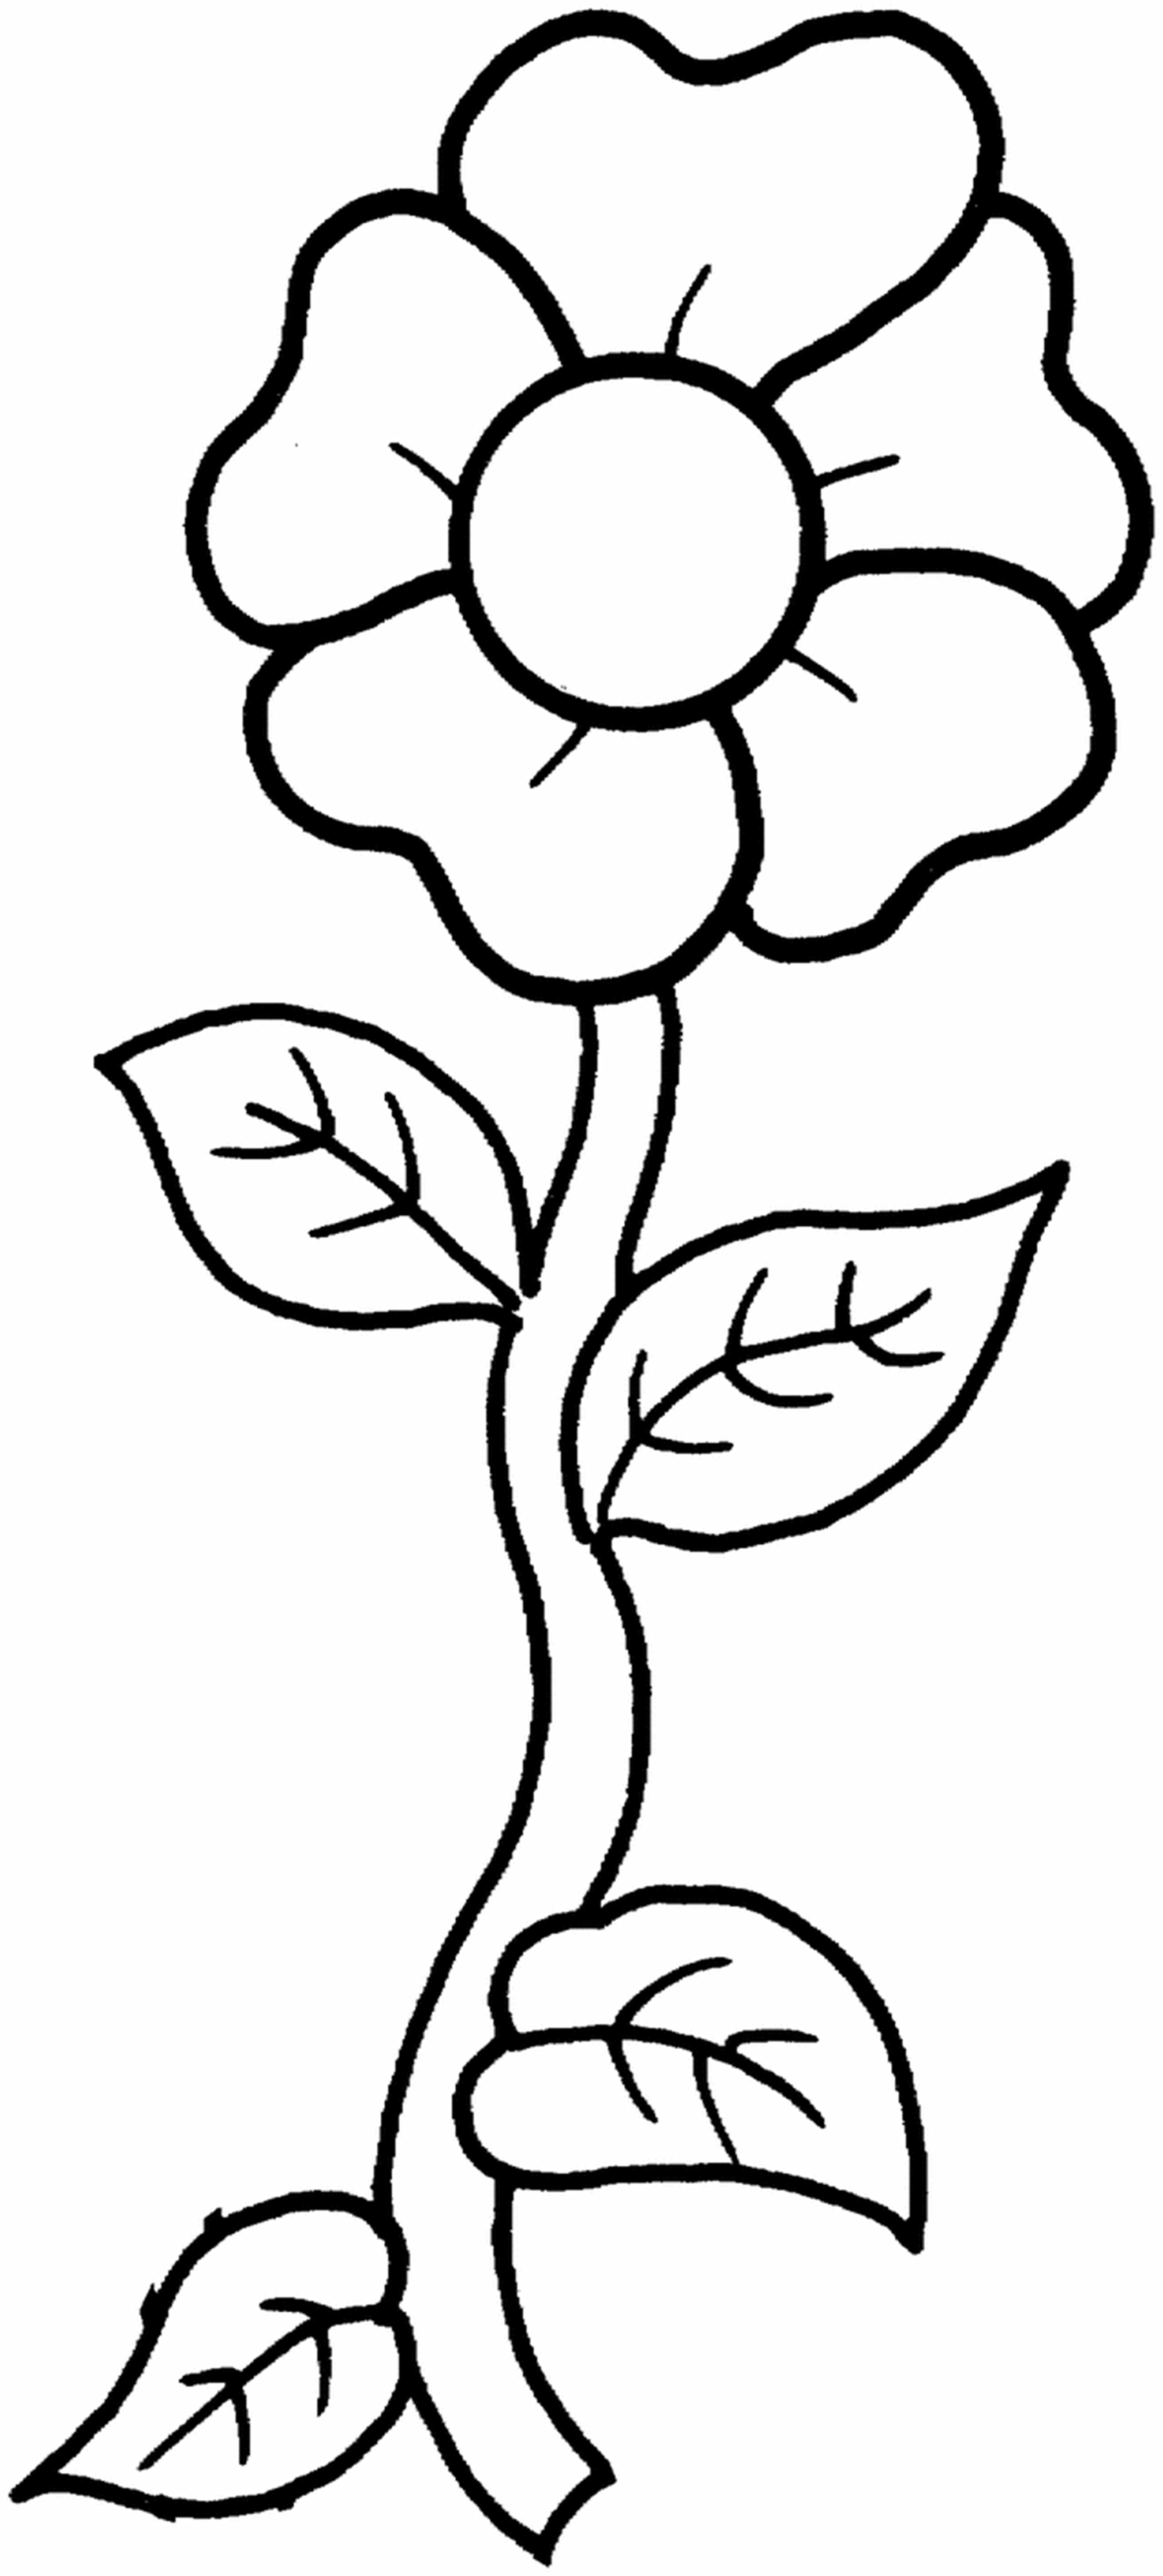 coloring pics of flowers free easy to print flower coloring pages tulamama coloring flowers pics of